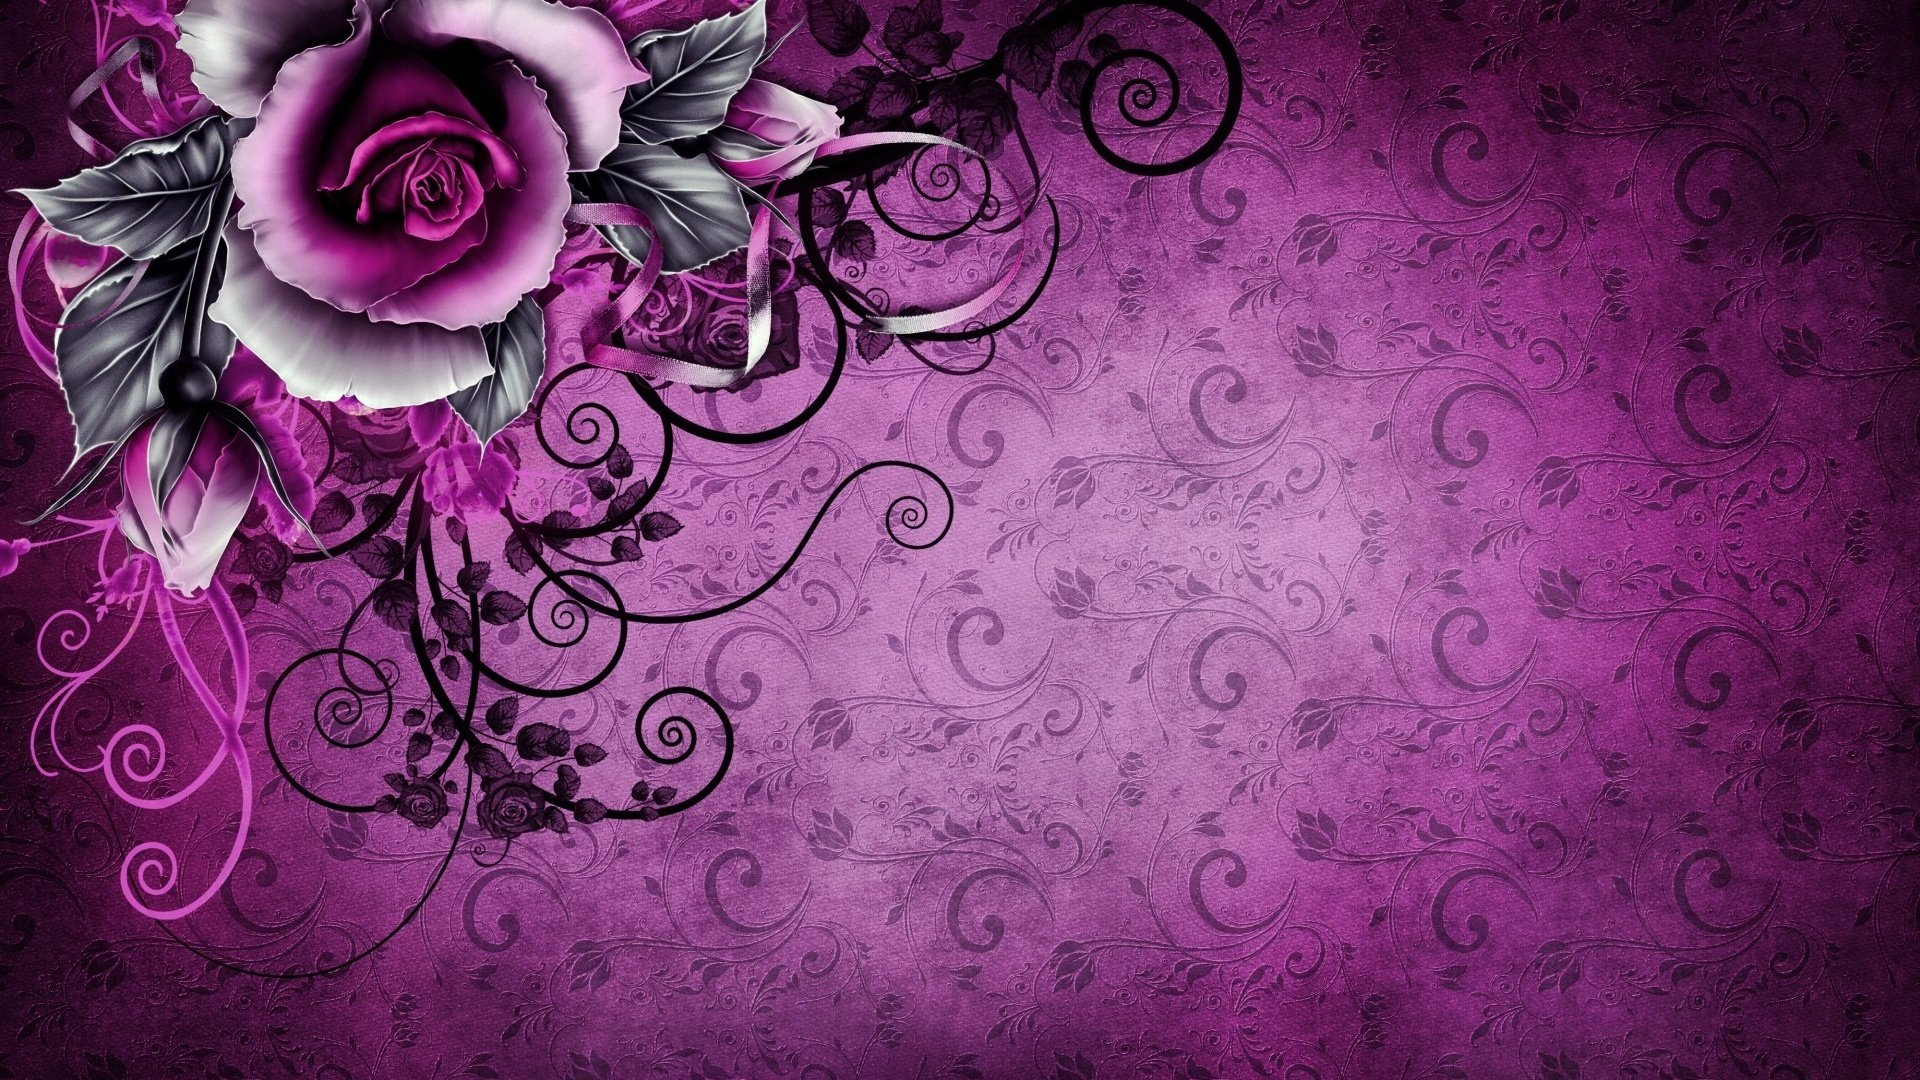 Wallpapers ID:719586